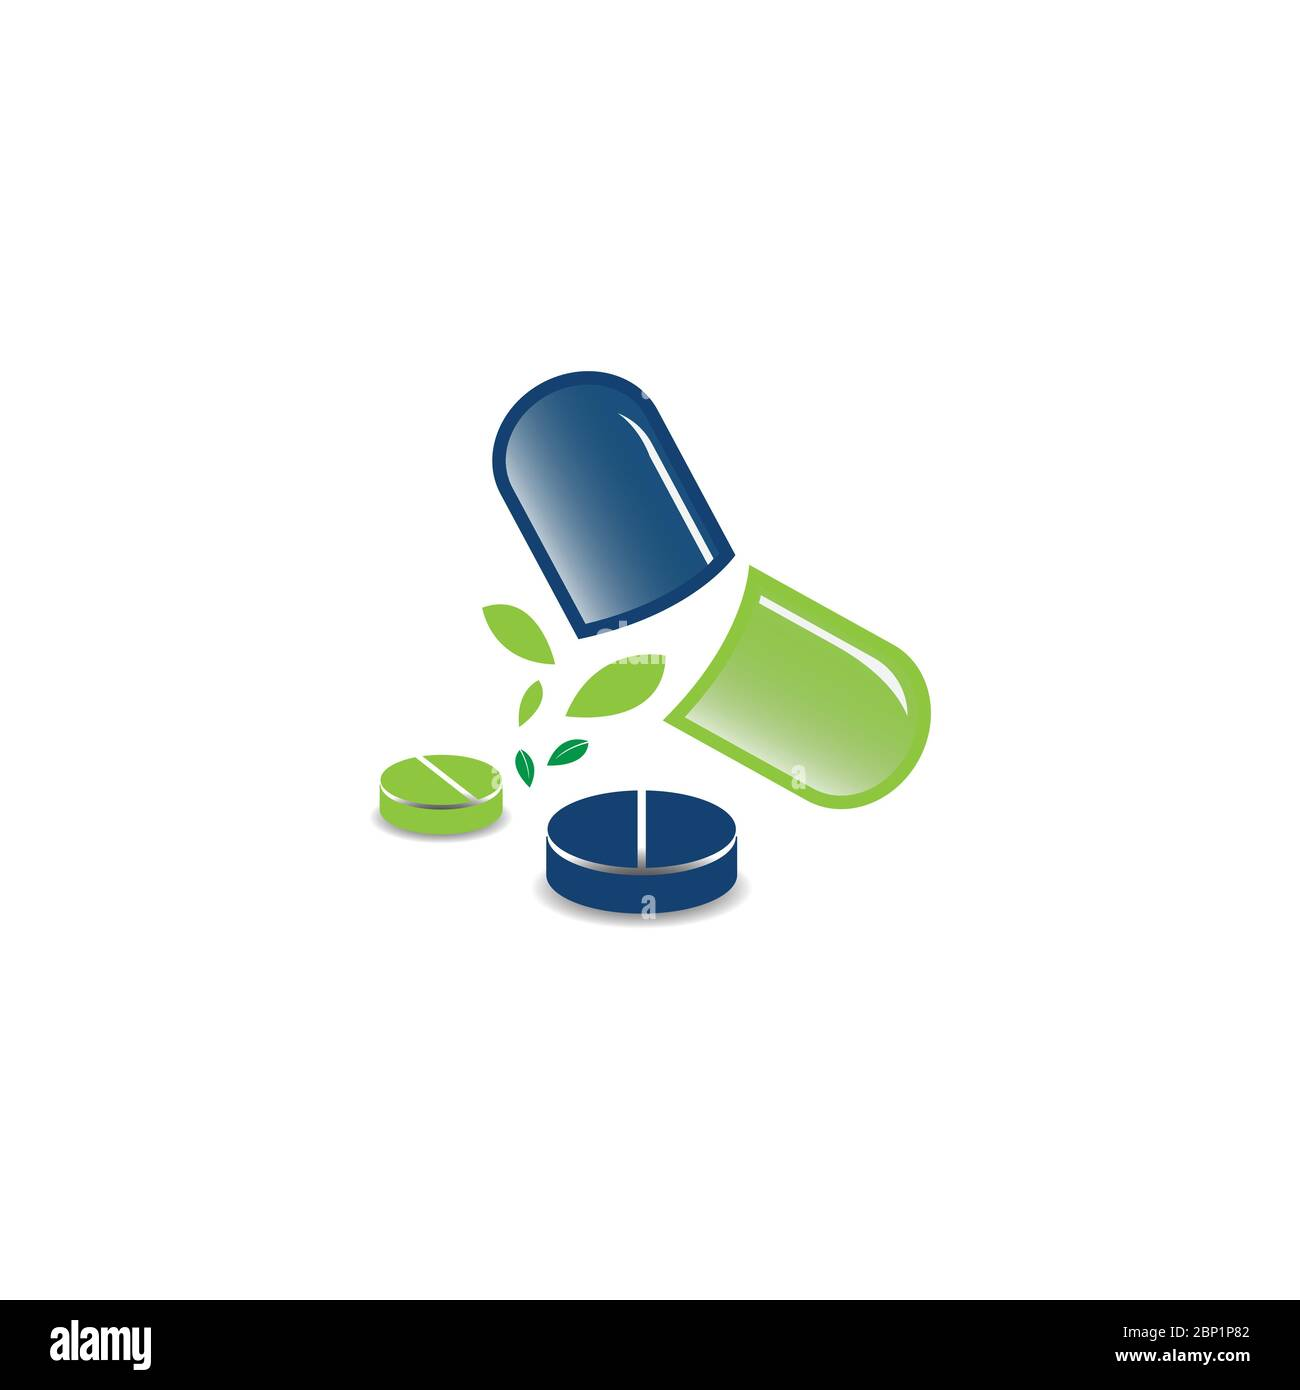 Nature Herbal Medicine Logo Design Illustration Vector Vector Illustration Of Herbal Medicine With Capsule Of Leafs And Pills Nature Medicine For He Stock Vector Image Art Alamy Zombie signs stickers free vector. https www alamy com nature herbal medicine logo design illustration vector vector illustration of herbal medicine with capsule of leafs and pills nature medicine for he image357769218 html